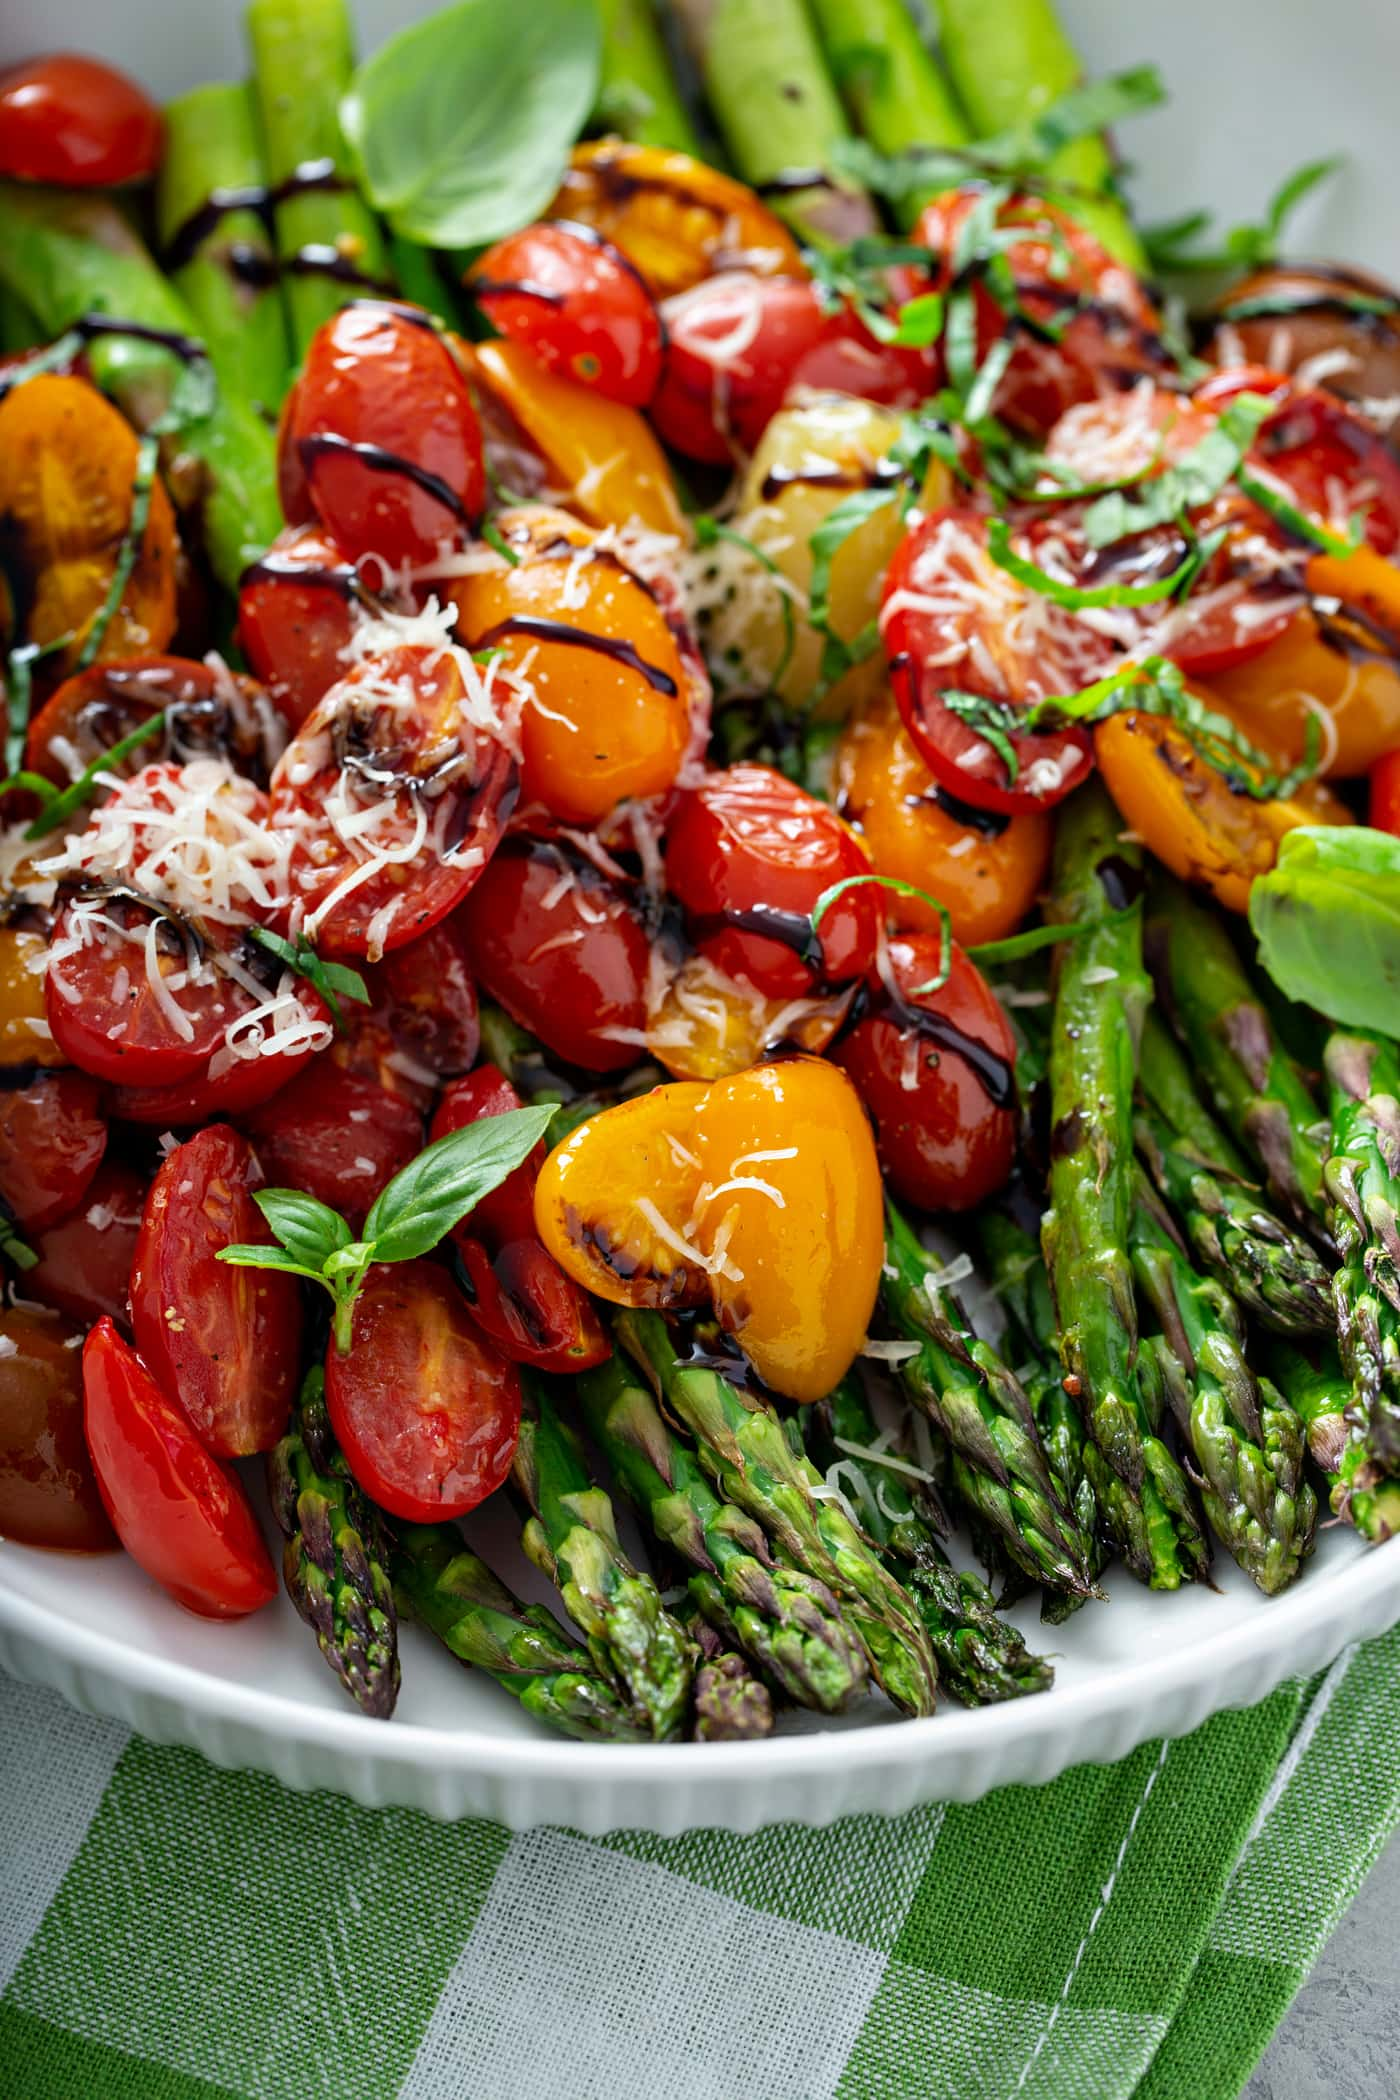 Balsamic glazed roasted tomatoes and asparagus. The bright green asparagus is topped with sliced red and yellow tomatoes and drizzled with balsamic glaze. There is grated Parmesan cheese sprinkled on top.